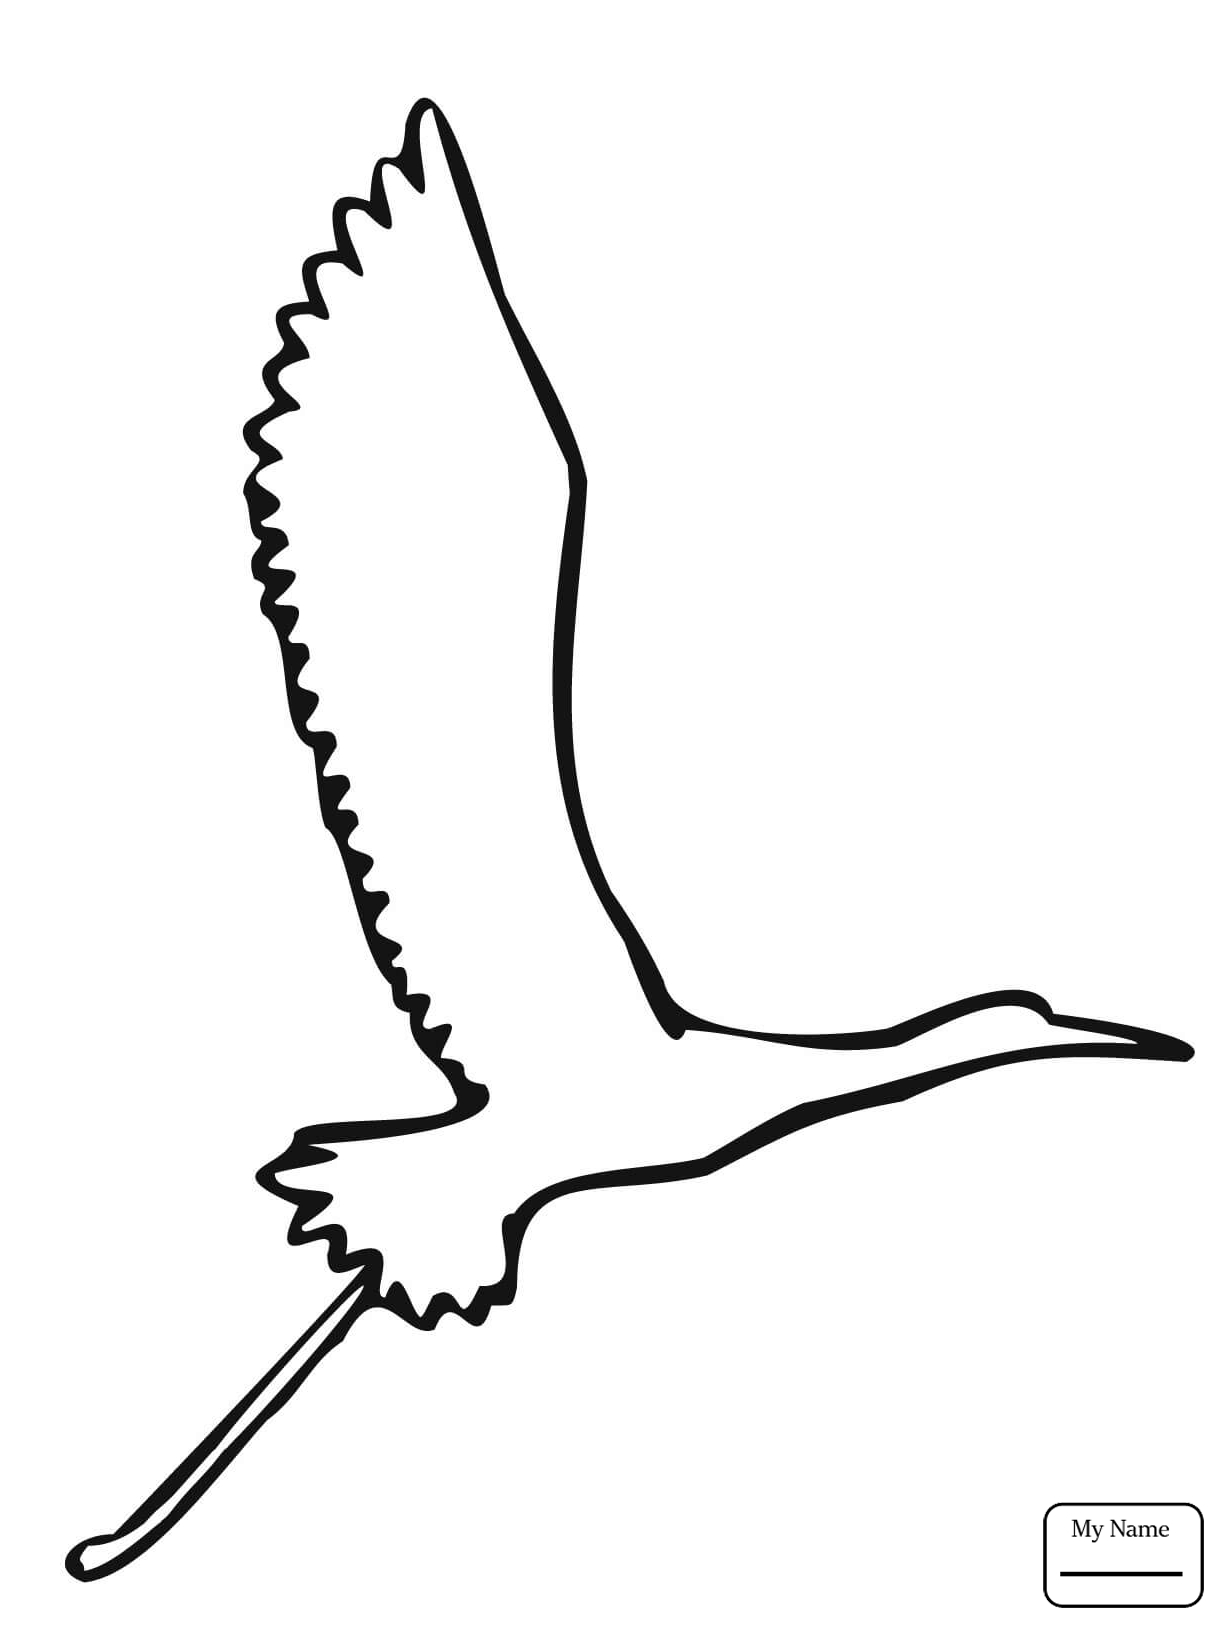 Bird Flight Drawing at GetDrawings.com | Free for personal use Bird ...